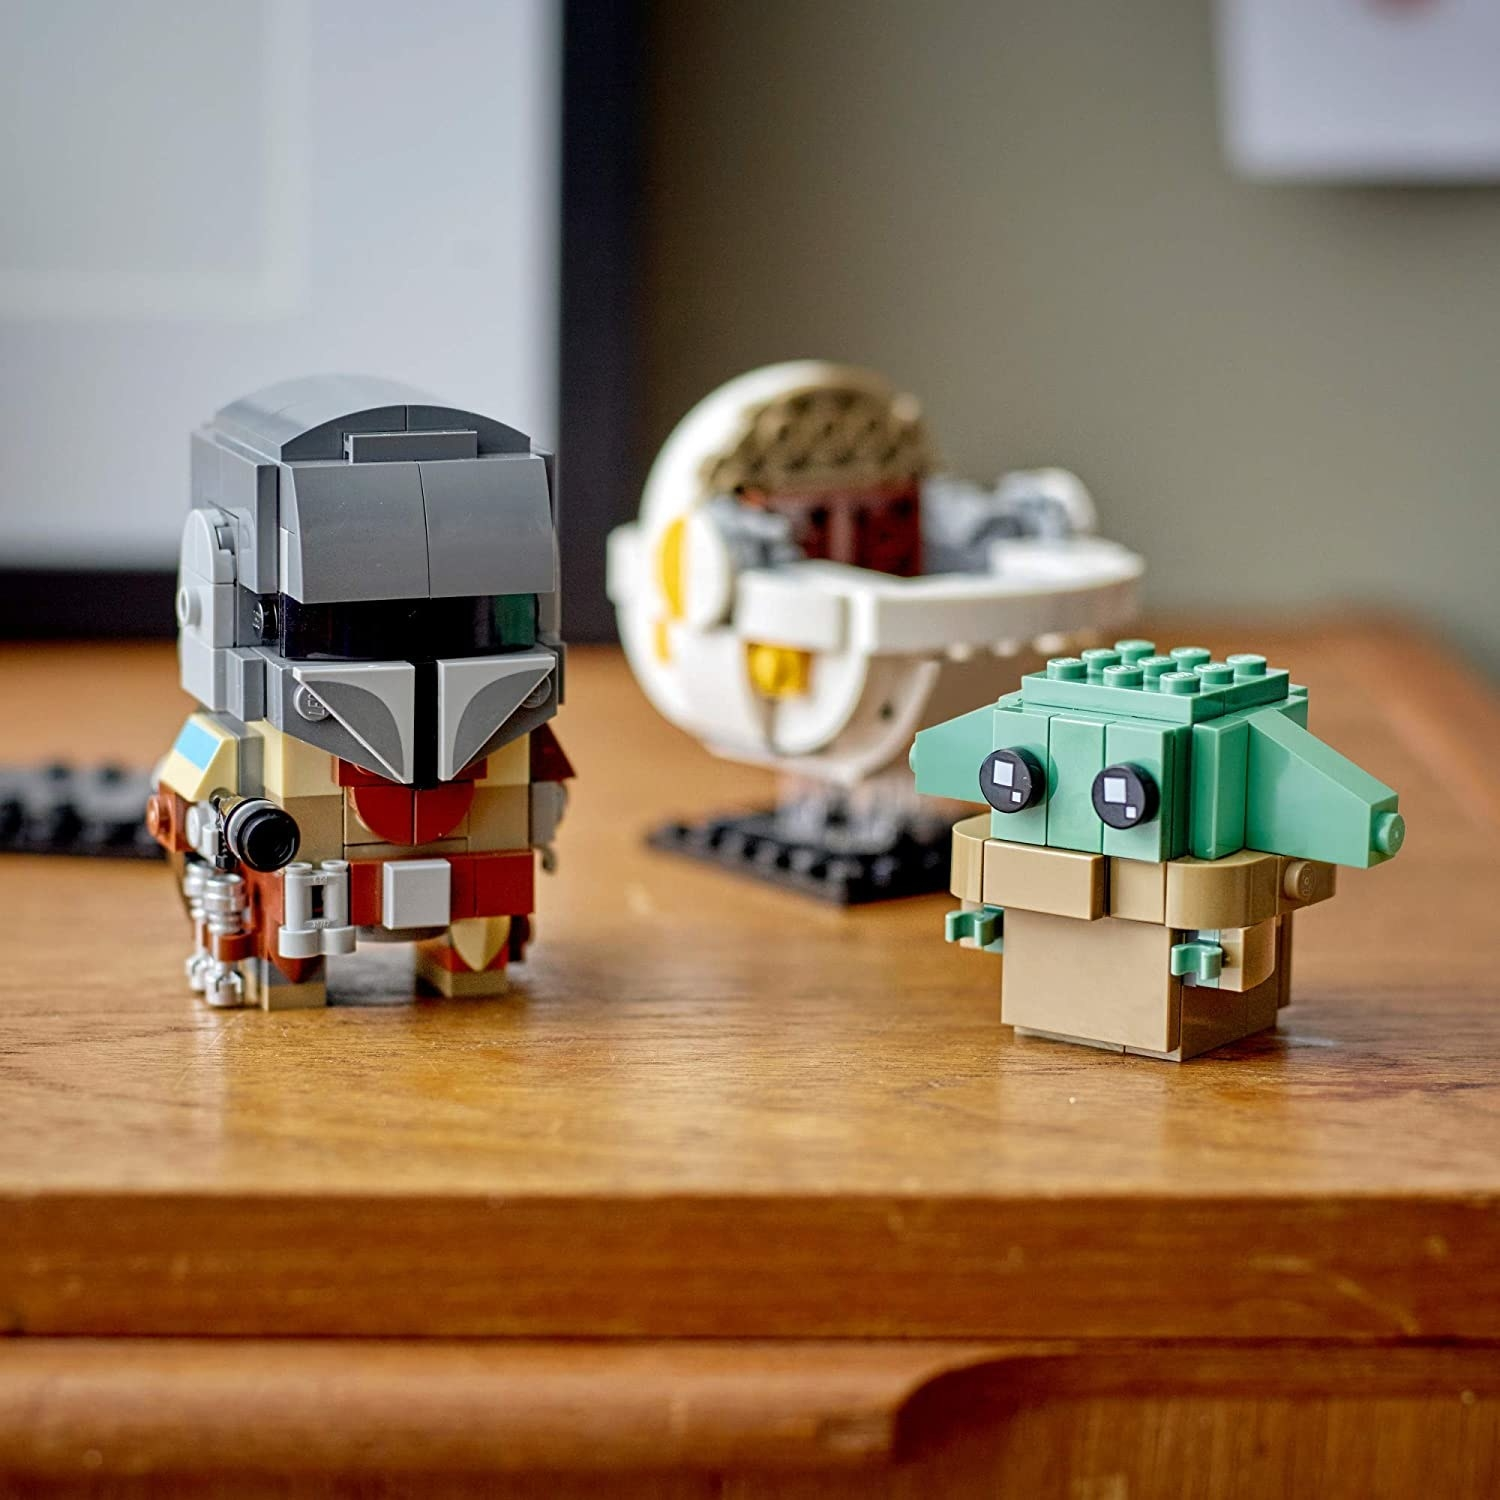 the two lego brick figures